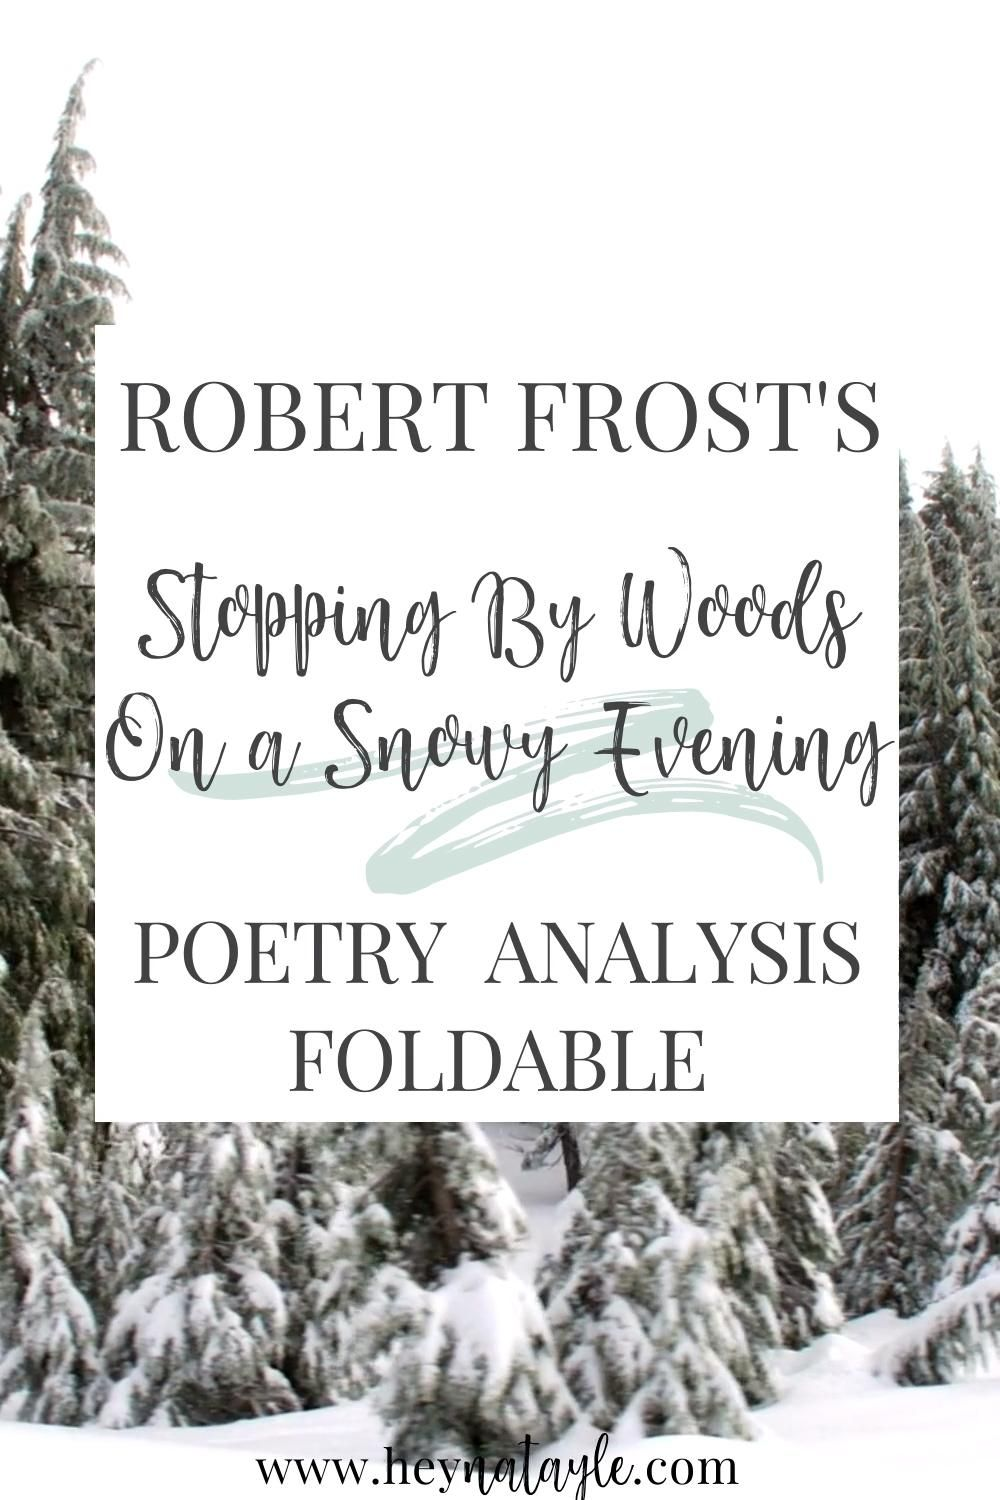 Stopping By Wood On A Snowy Evening Robert Frost Poetry Analysi Activity Video Lesson Activities Paraphrase